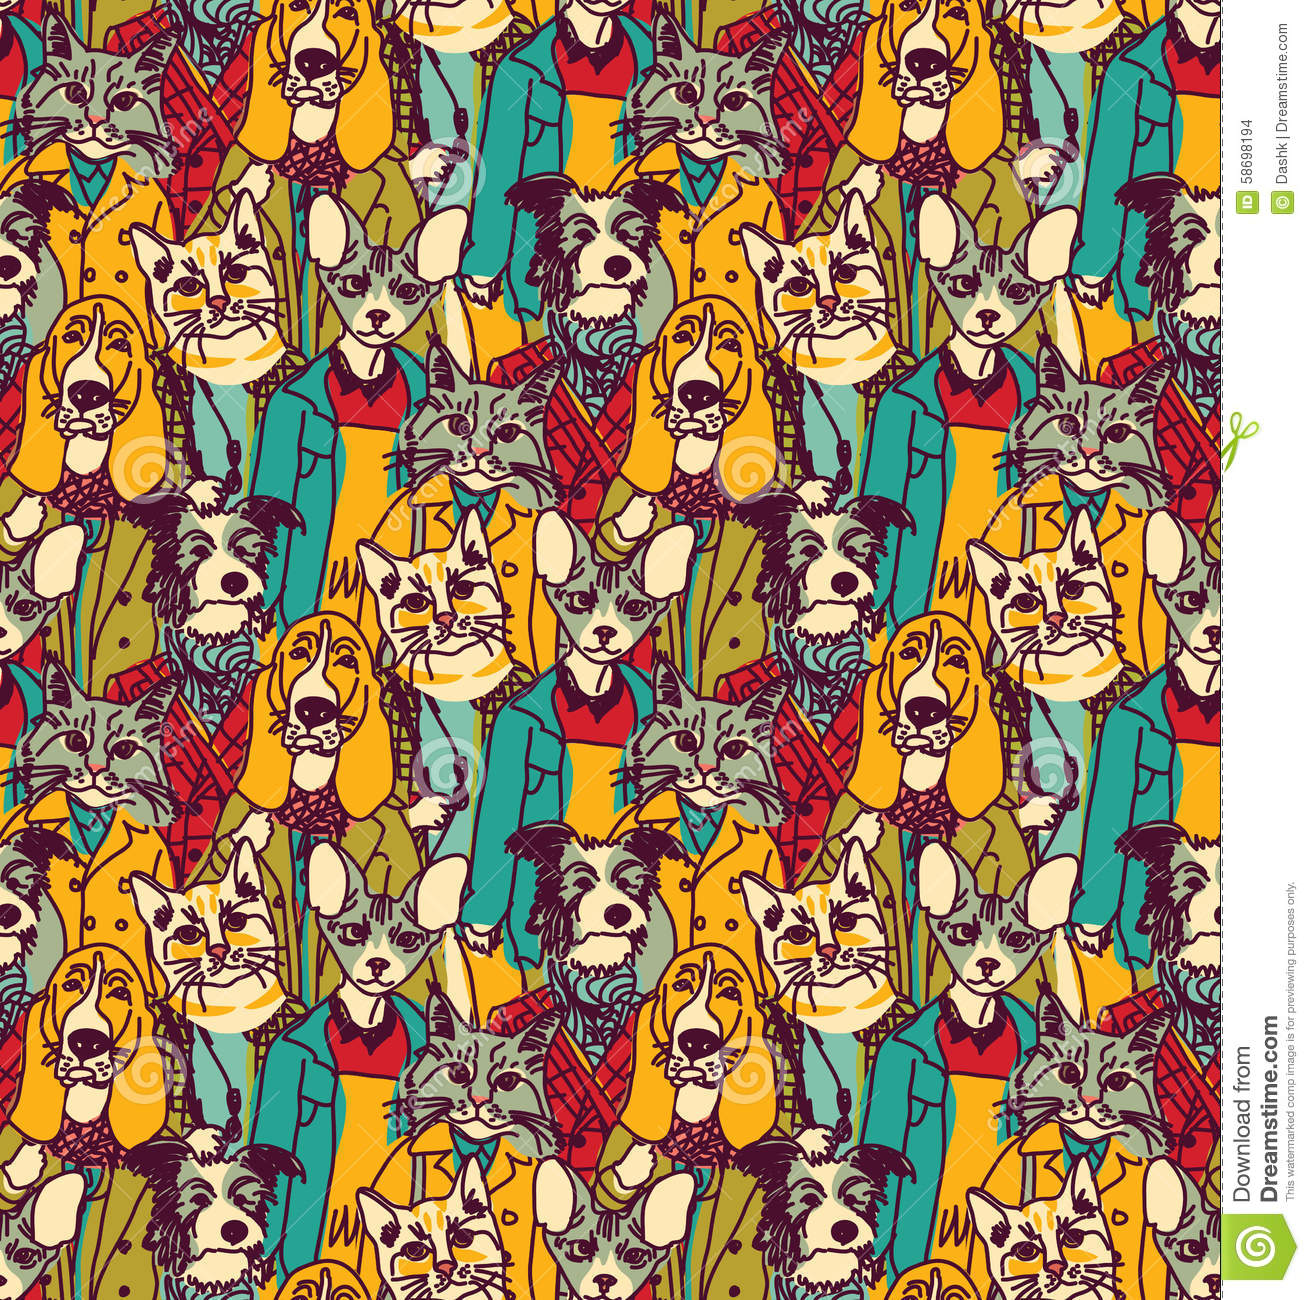 Color cats like - Crowd People Like Cats And Dogs Seamless Pattern Stock Images